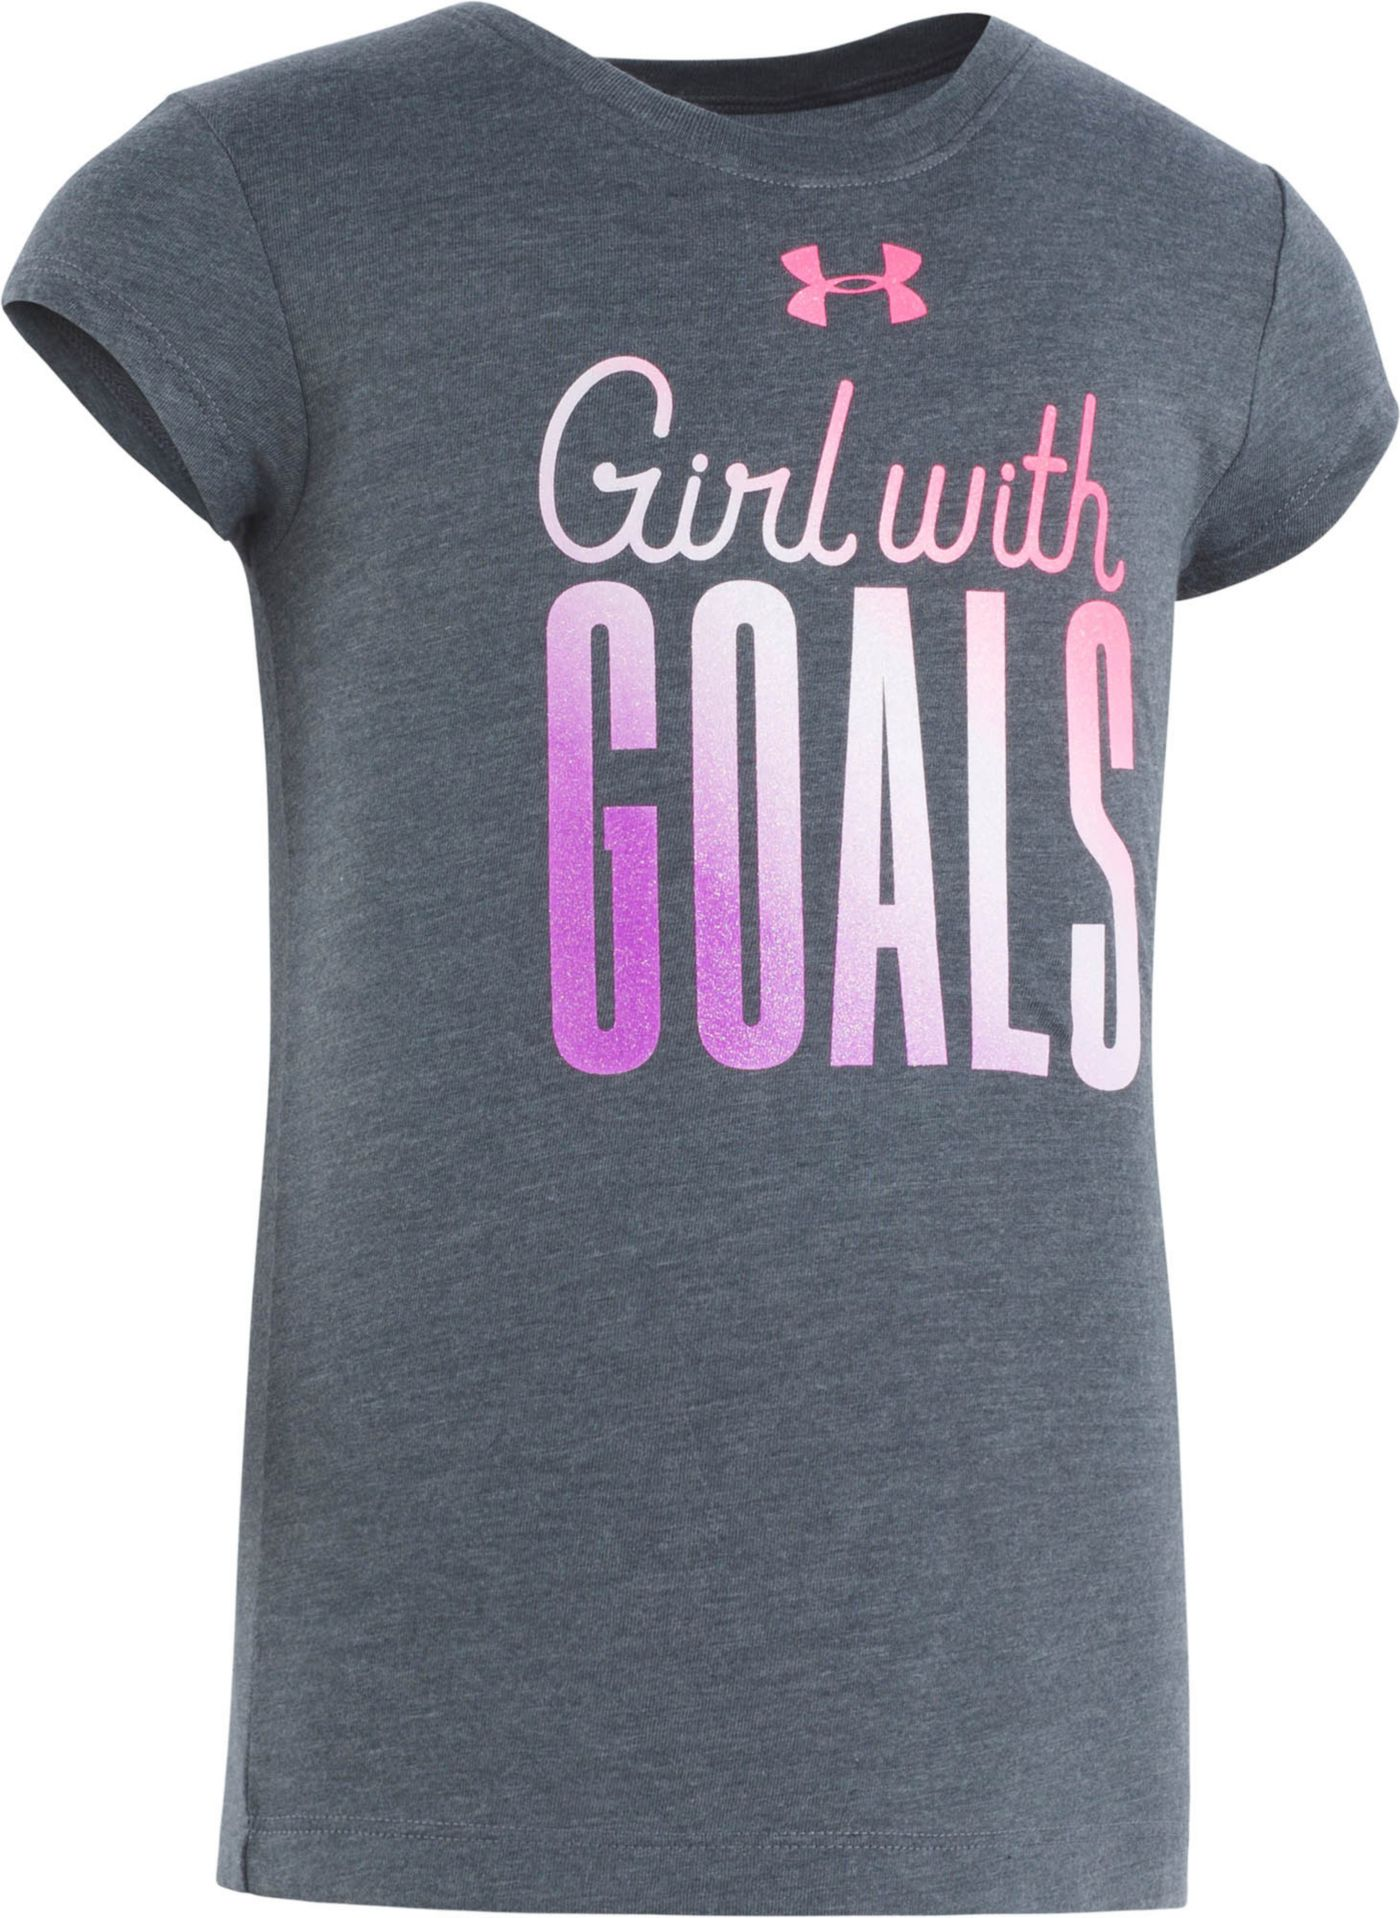 Under Armour Little Girls' Girls With Goals Graphic T-Shirt